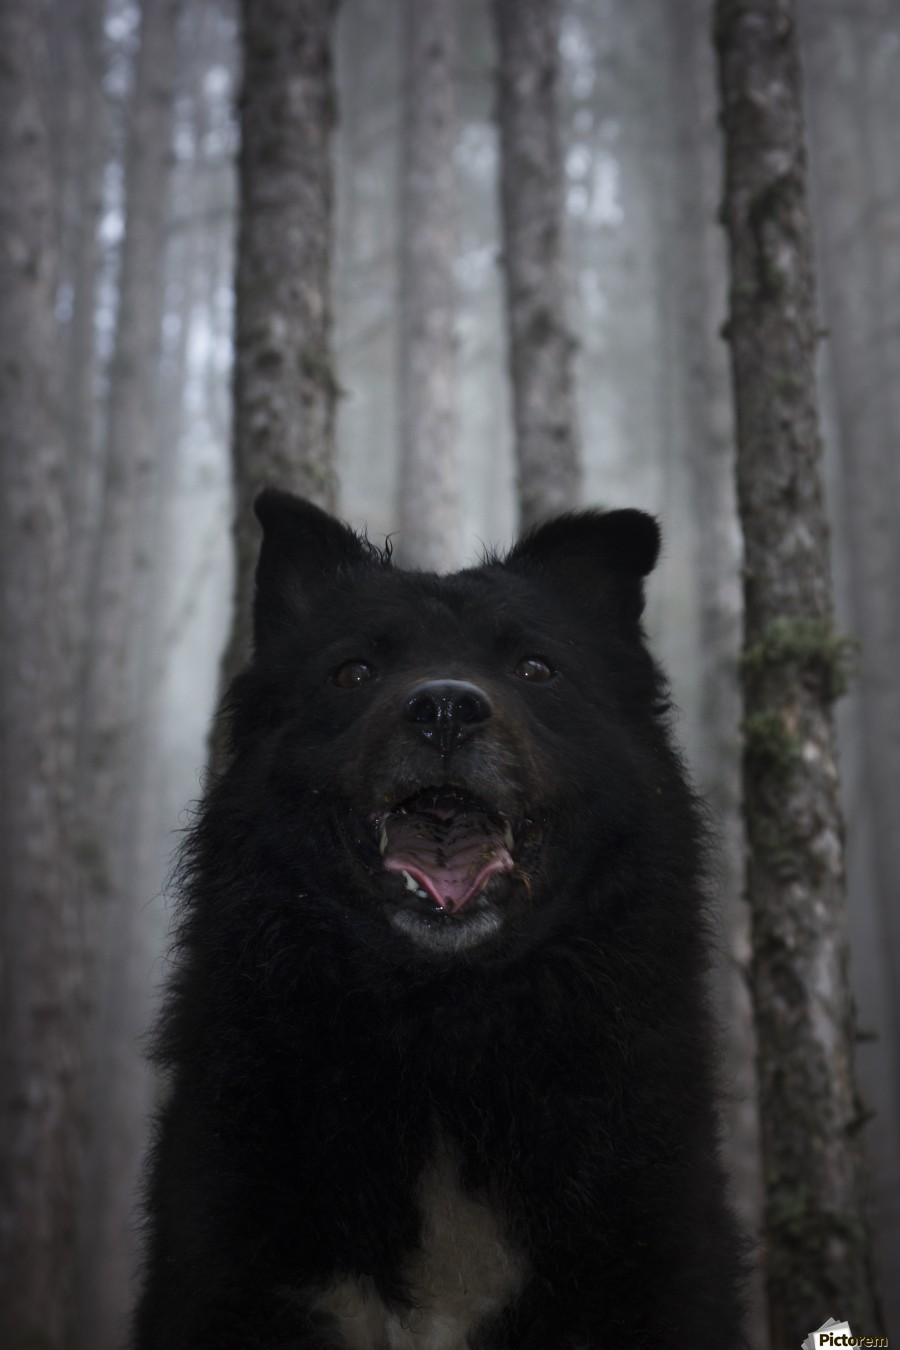 Home in forest  , Marko Radovanovic , dog, black, animal, forest, fog, portrait, pulin, shepherd_dog, hungarian_sheep_dog, pine, morning, light_brightness, white_mark, posing, straight, frontal, happy_dog, thick_forest, nature, serbia,central_figure, open_mouth,